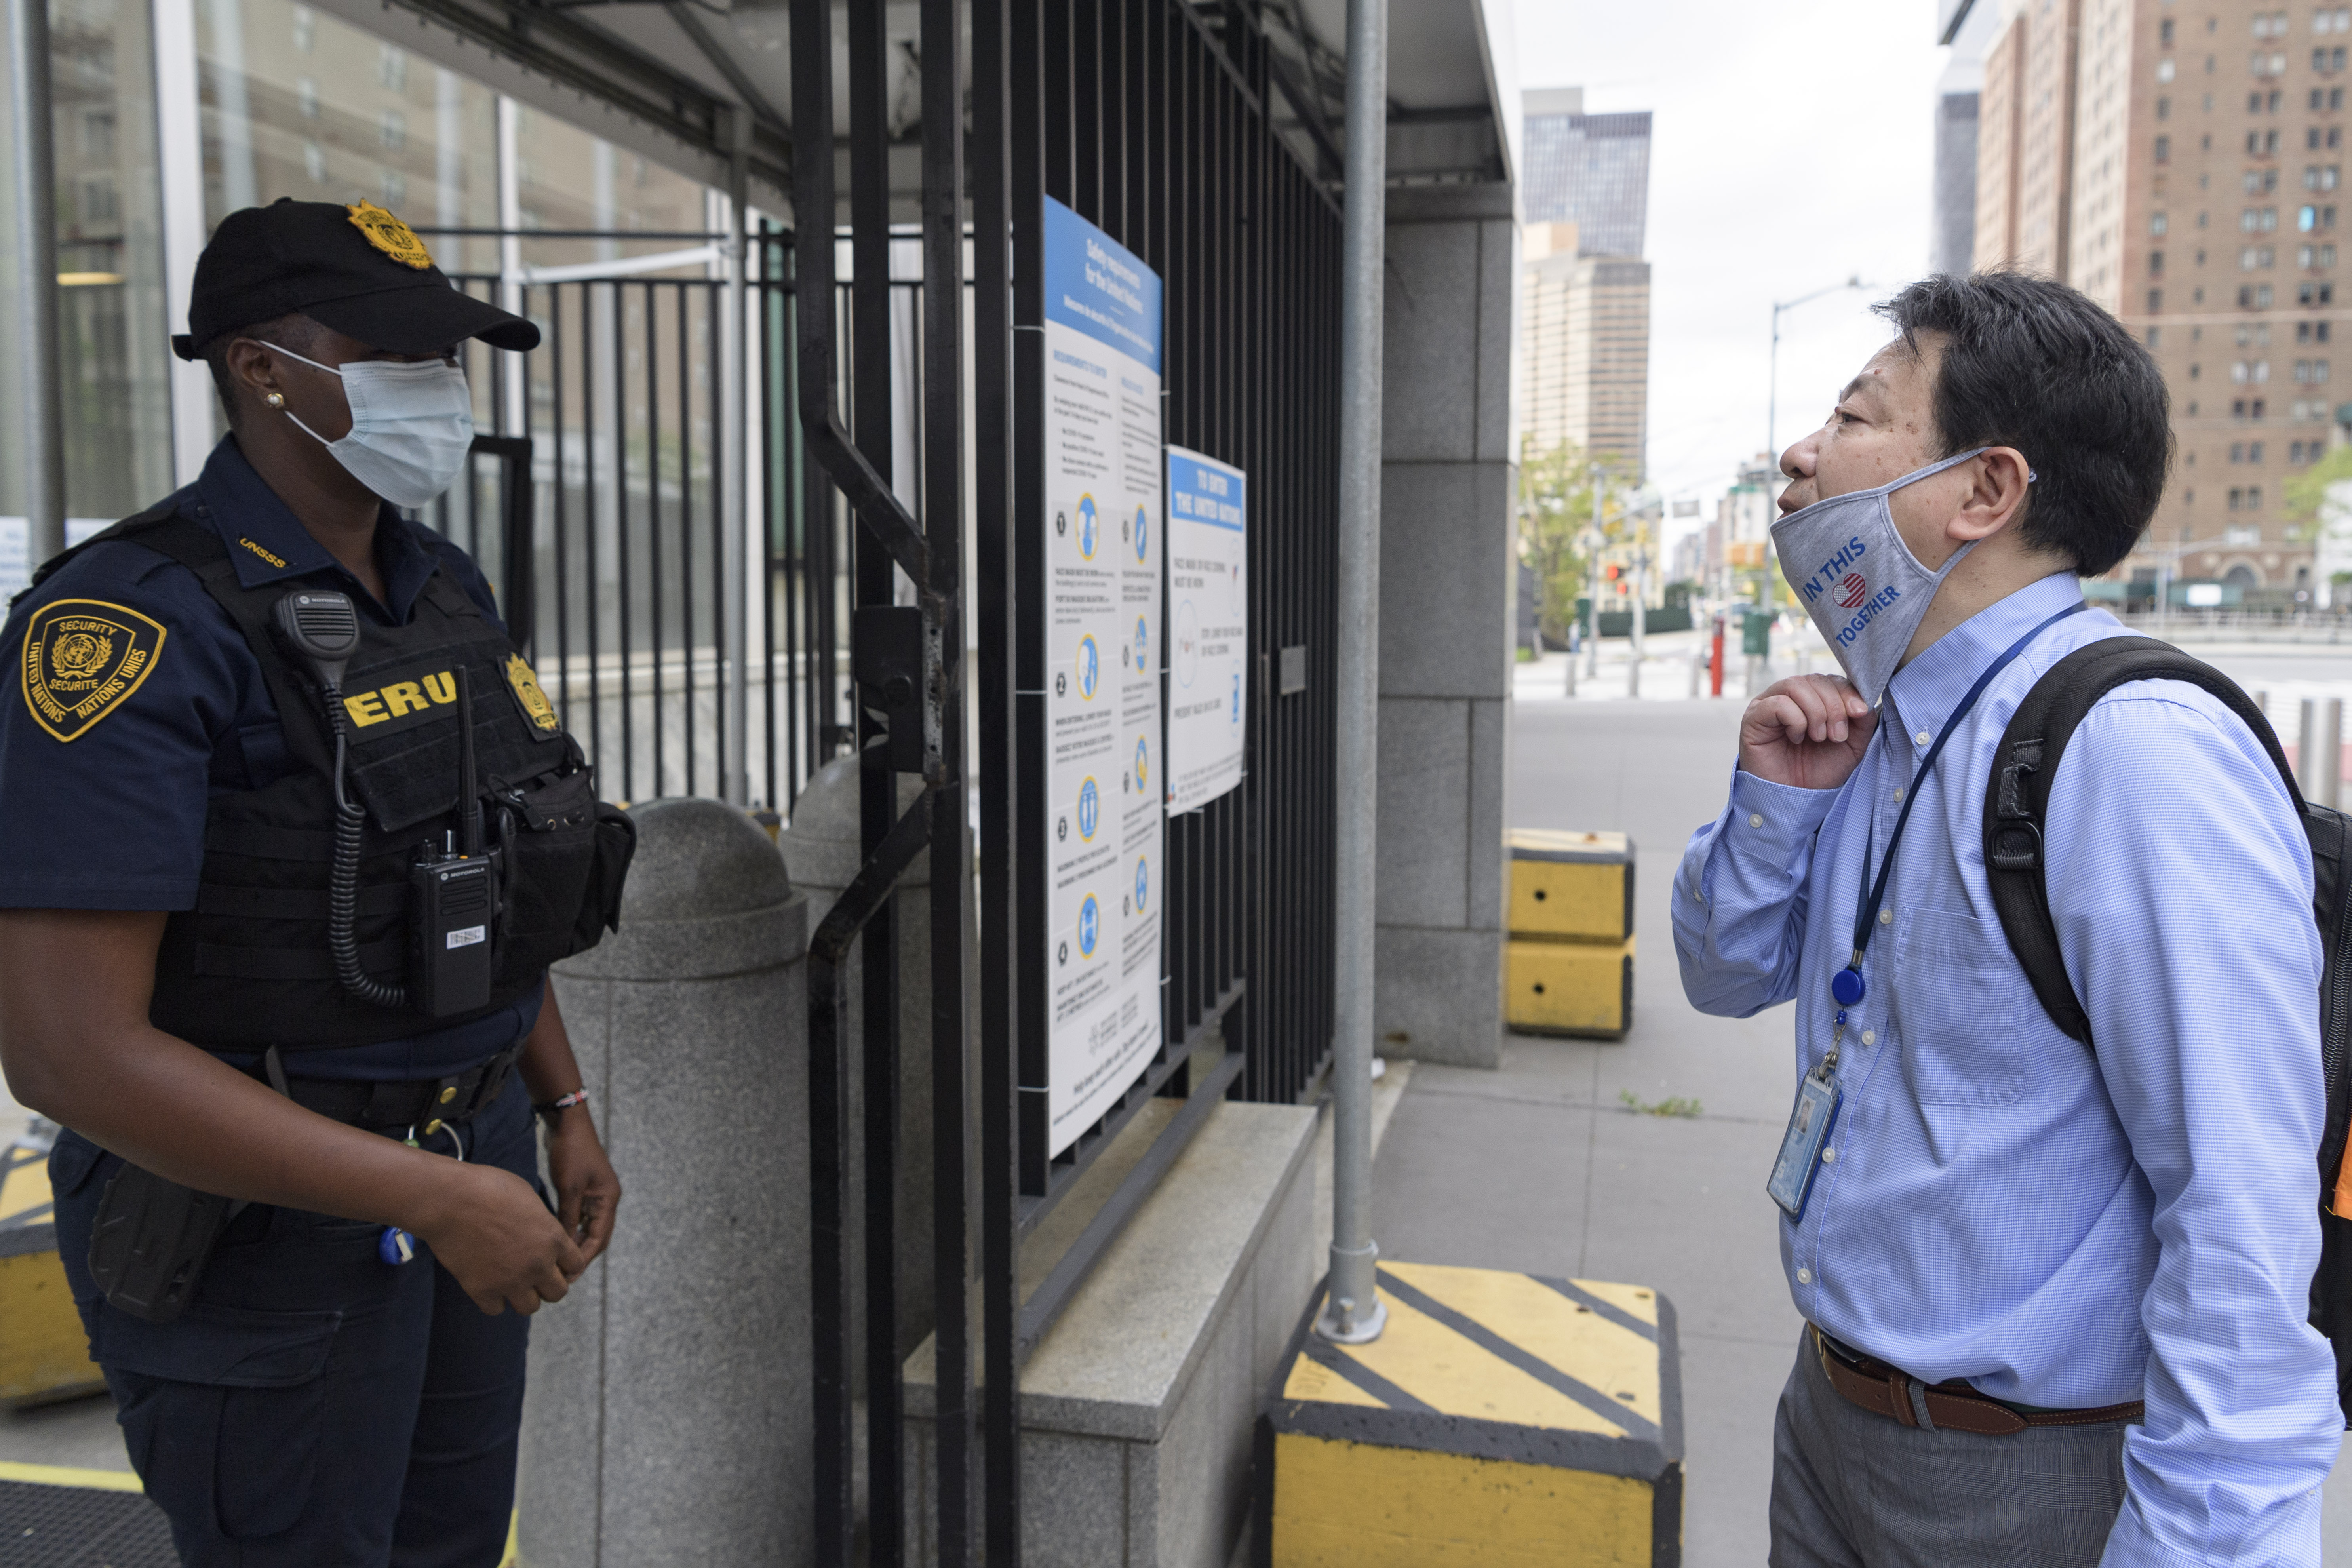 Man lowers his facemask in front of a Security Officer